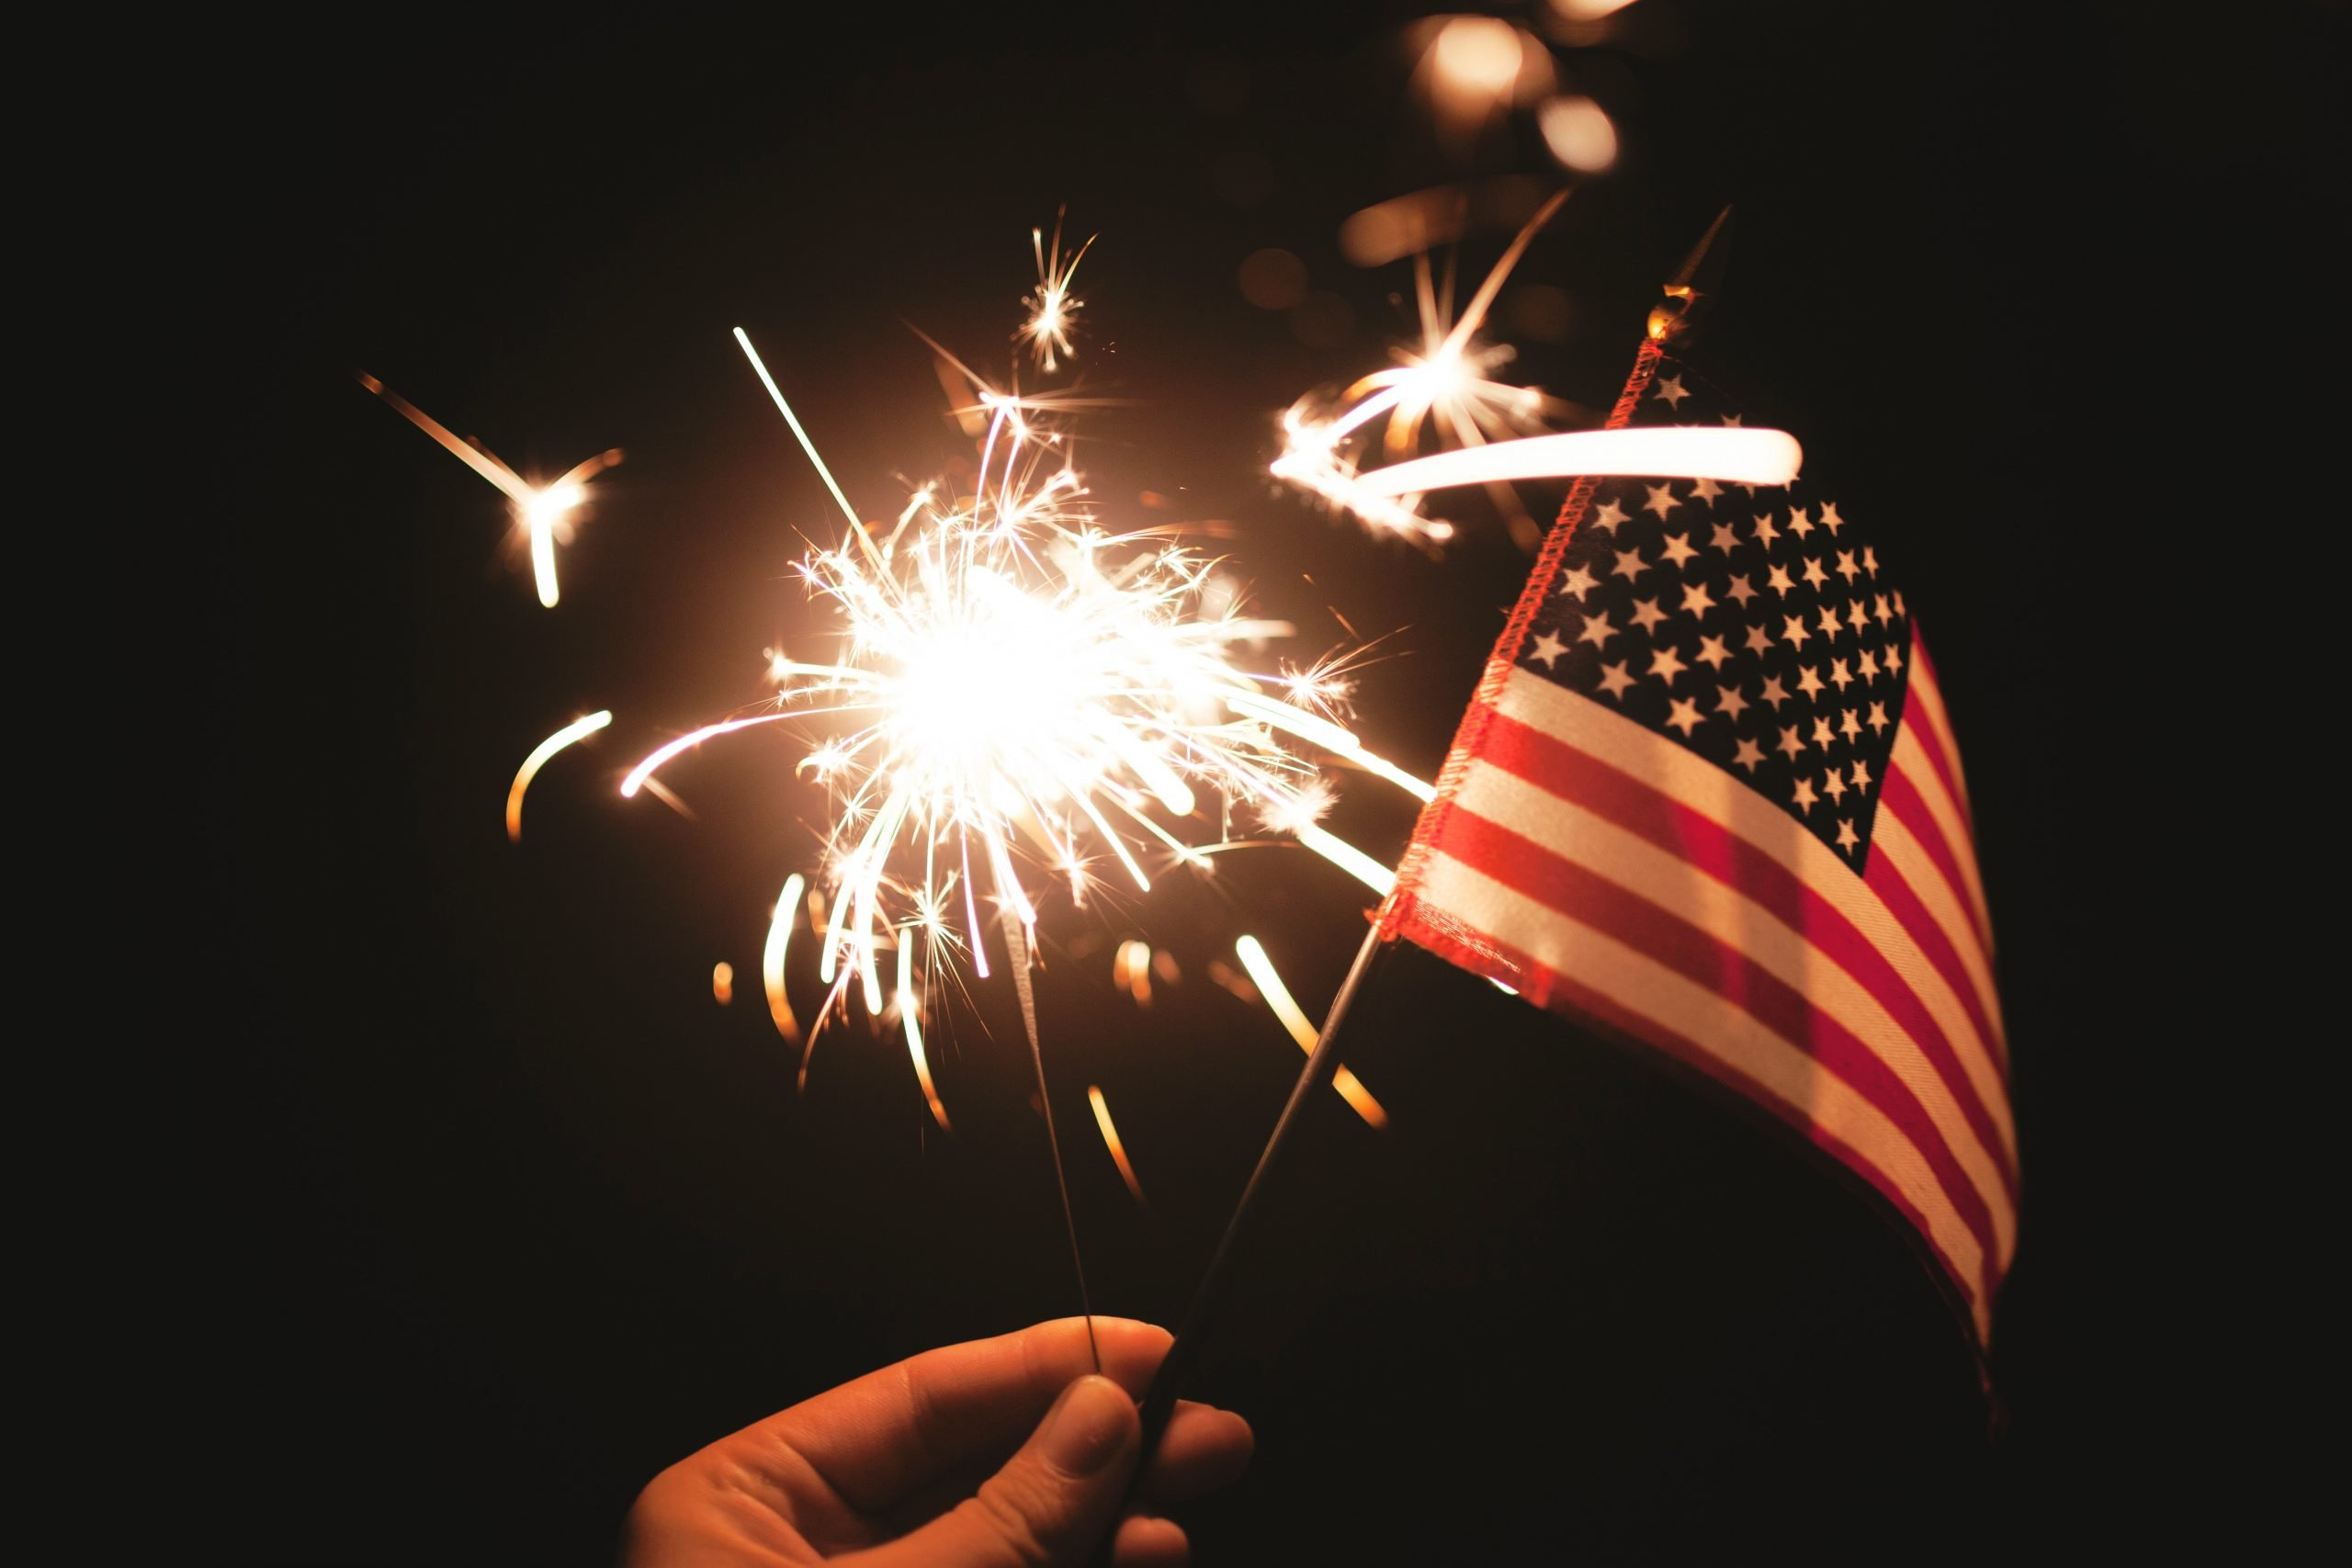 Fireworks On Wall Street; 3 Main Indexes Hit New Highs